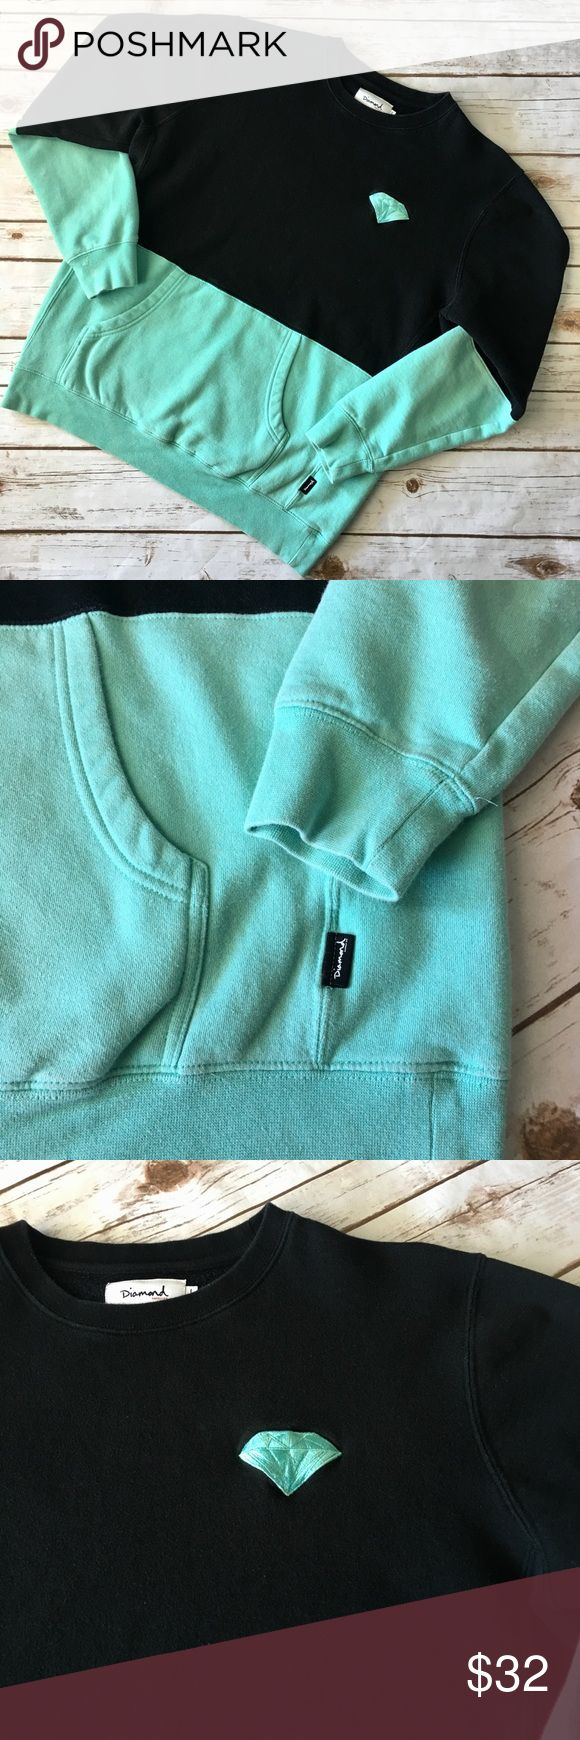 Diamond Supply Company - Men's Sweater (L) Diamond Supply Company - Men's Sweater With Hip Pockets (size Large). In amazing preowned condition. Please be sure to check out all of my other men's items to bundle and save. Same day or next business day shipping is guaranteed. Reasonable offers will be considered. Diamond Supply Co. Sweaters